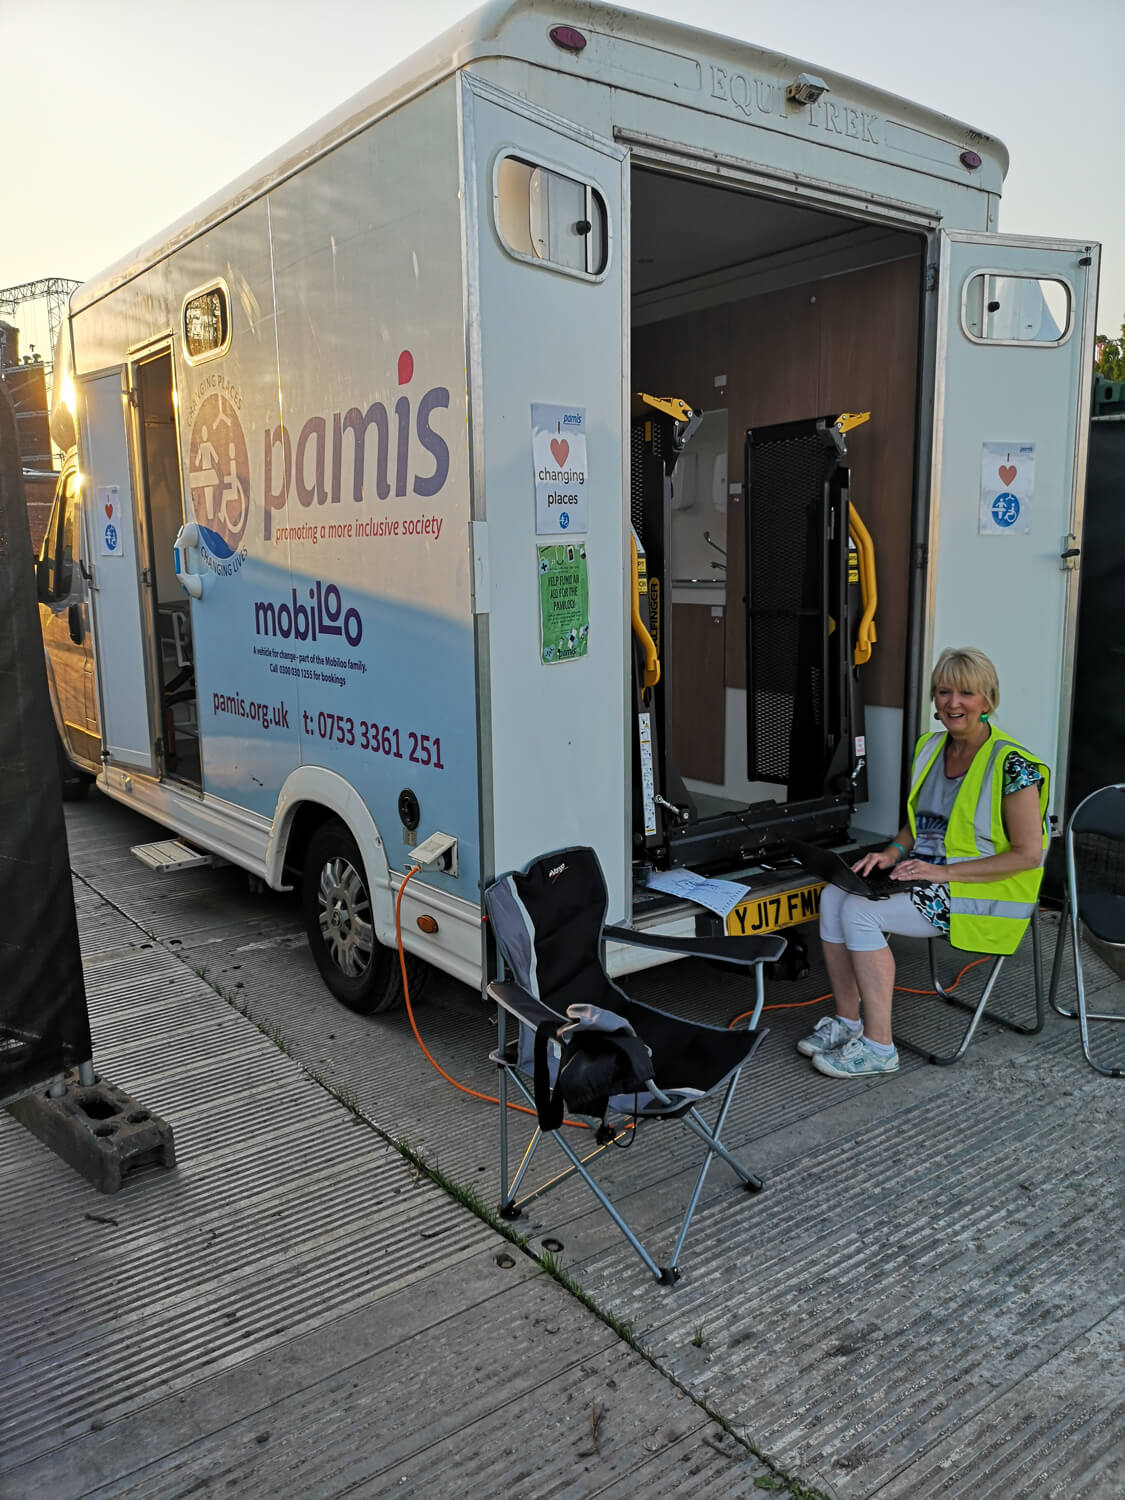 The Changing Places mobile toilet from Pamiloo Pamis.